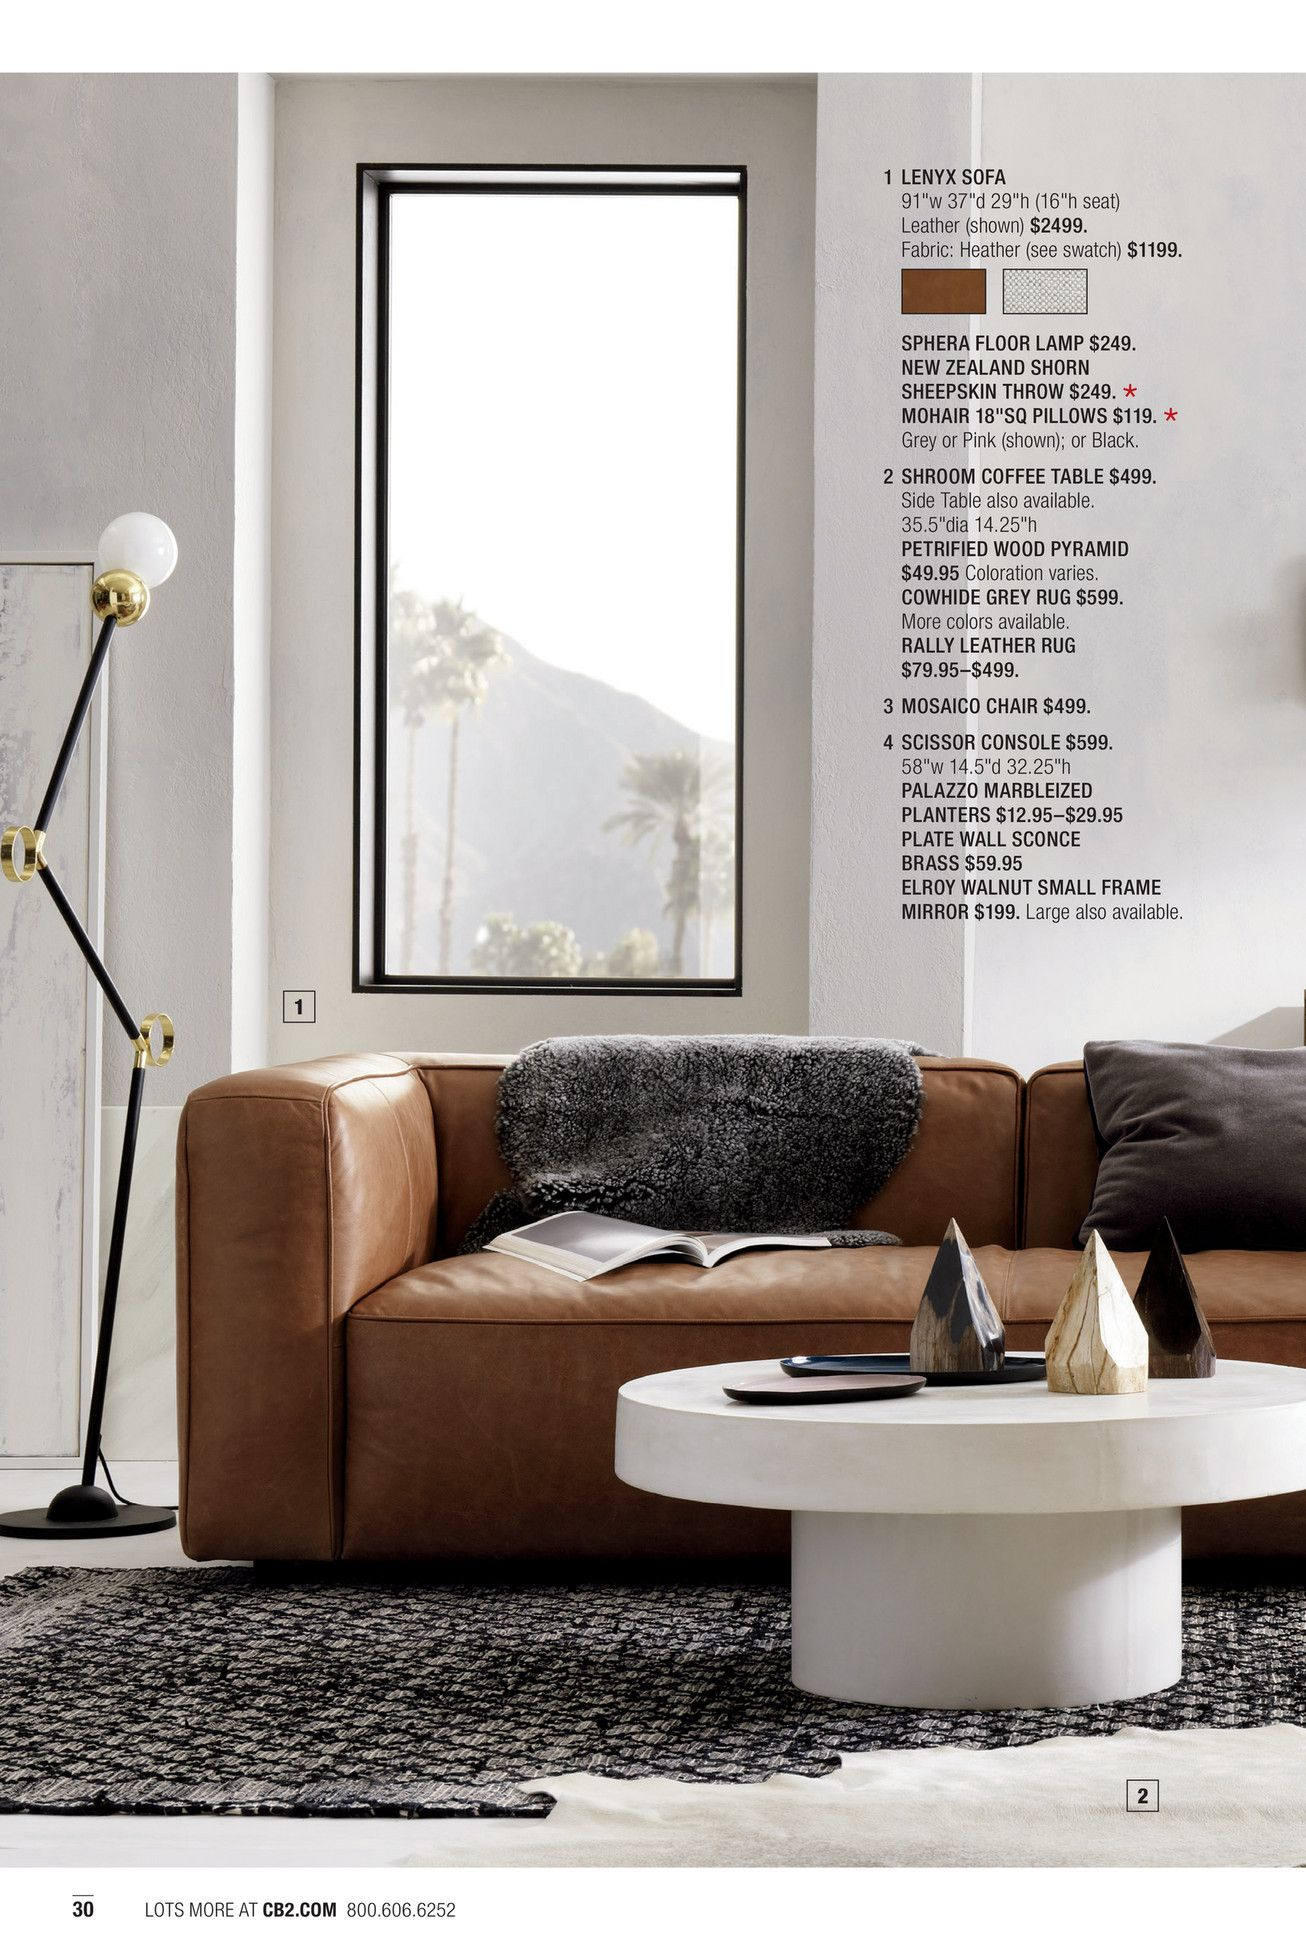 Gamma Vessel Sofas & Sectional s by Casarredo Pinterest